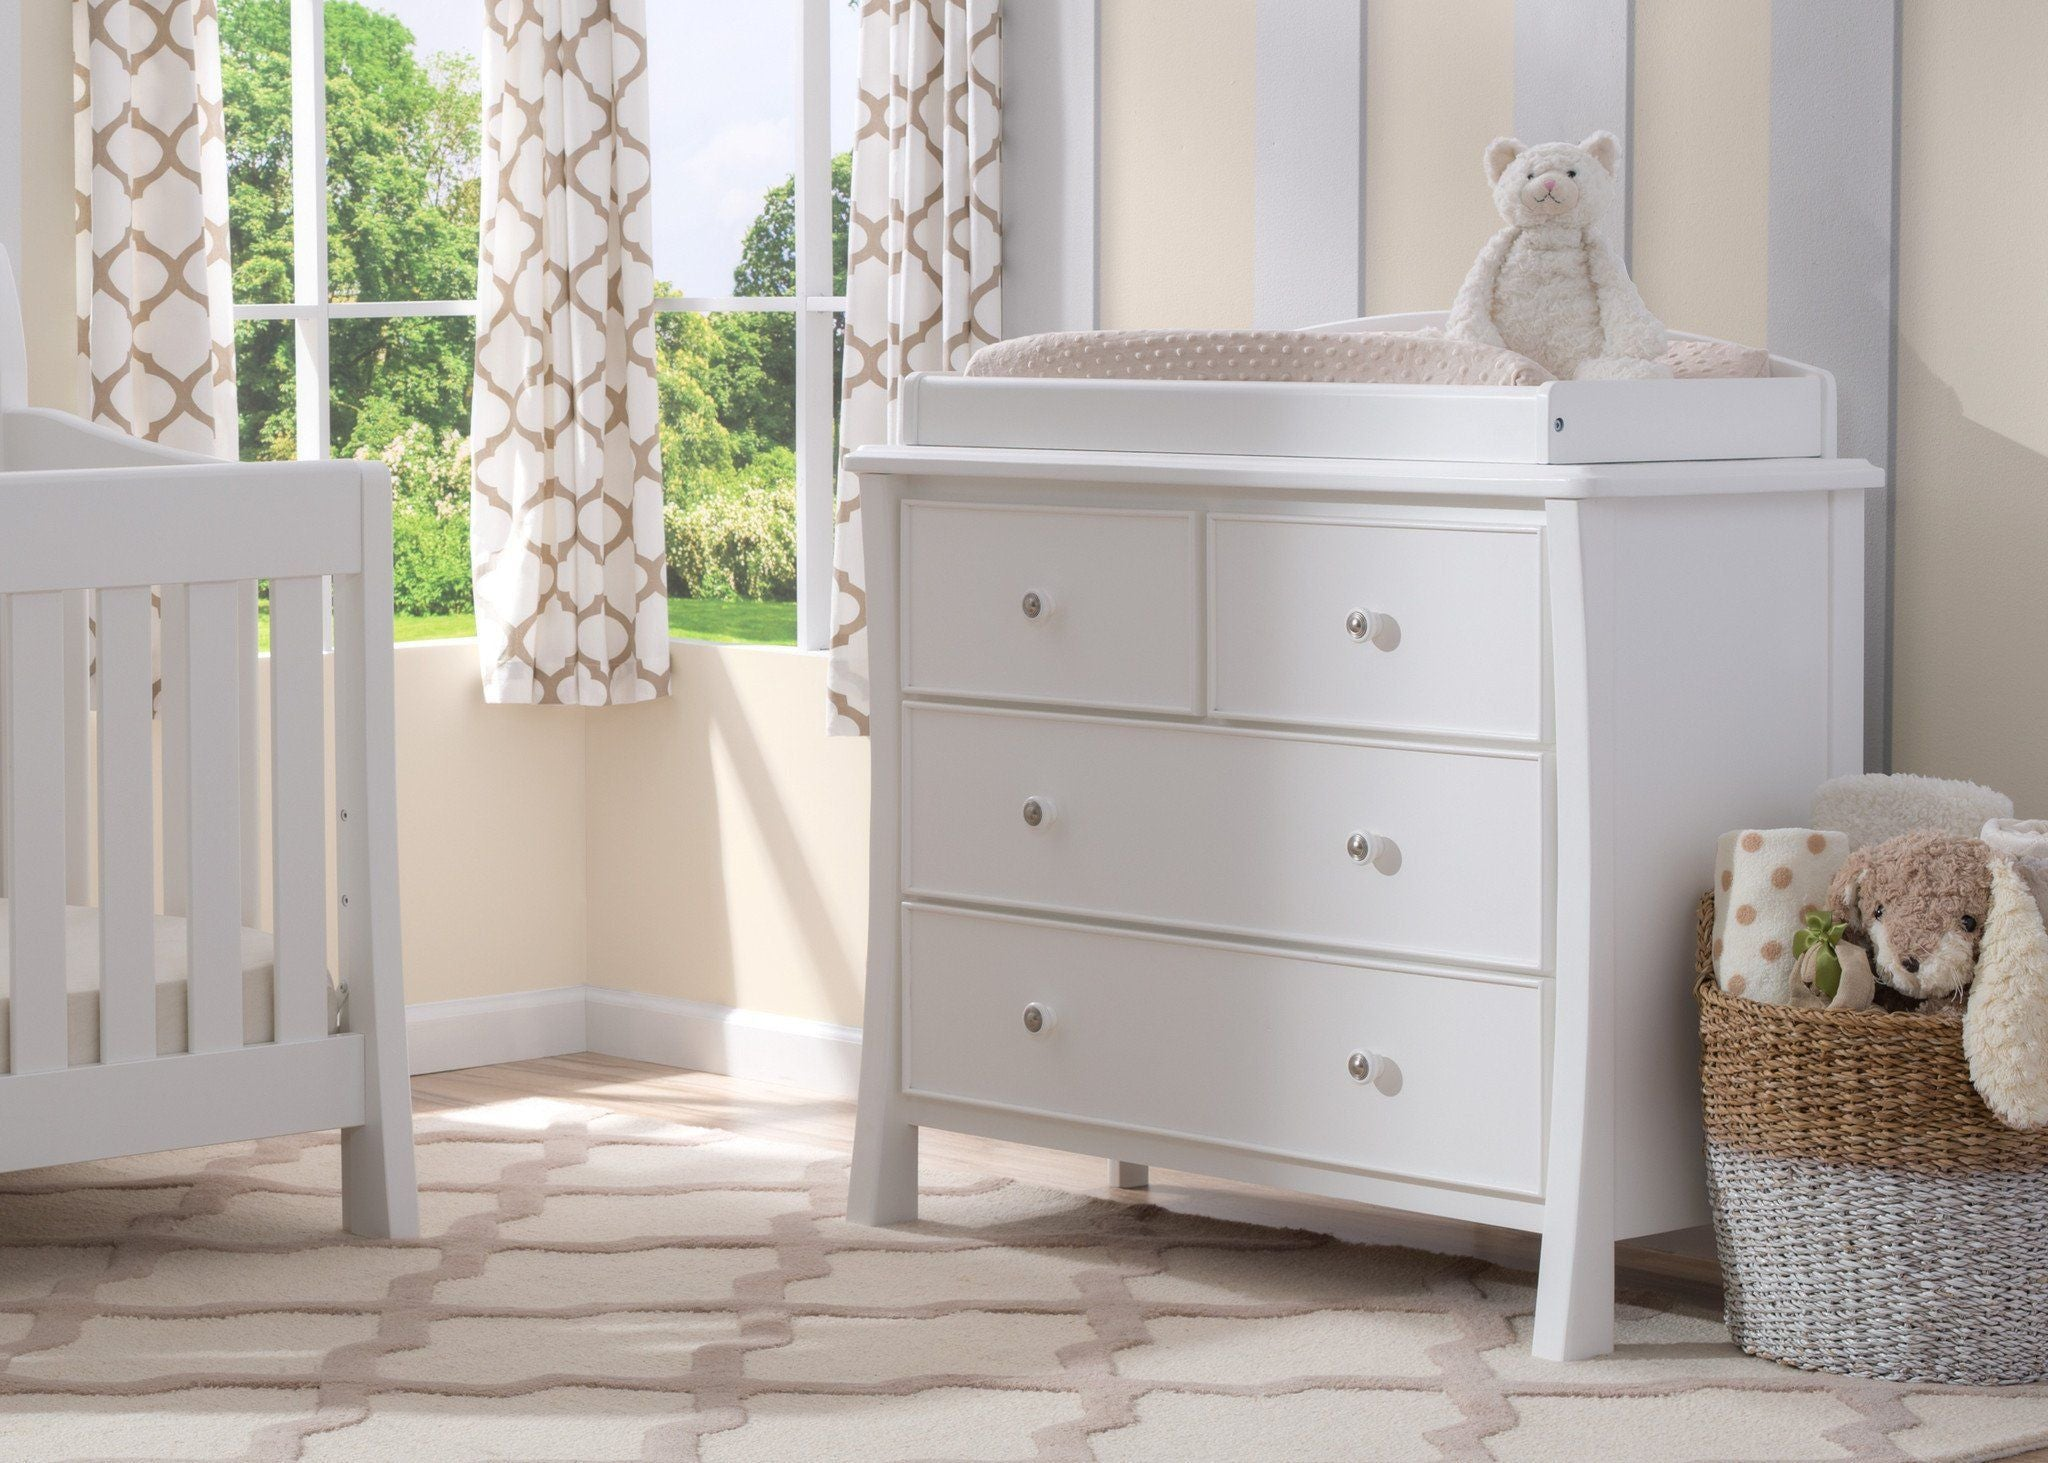 Simmons Kids White Ambiance (108) Madisson 4 Drawer Dresser with Changing Top, Room View, a1a